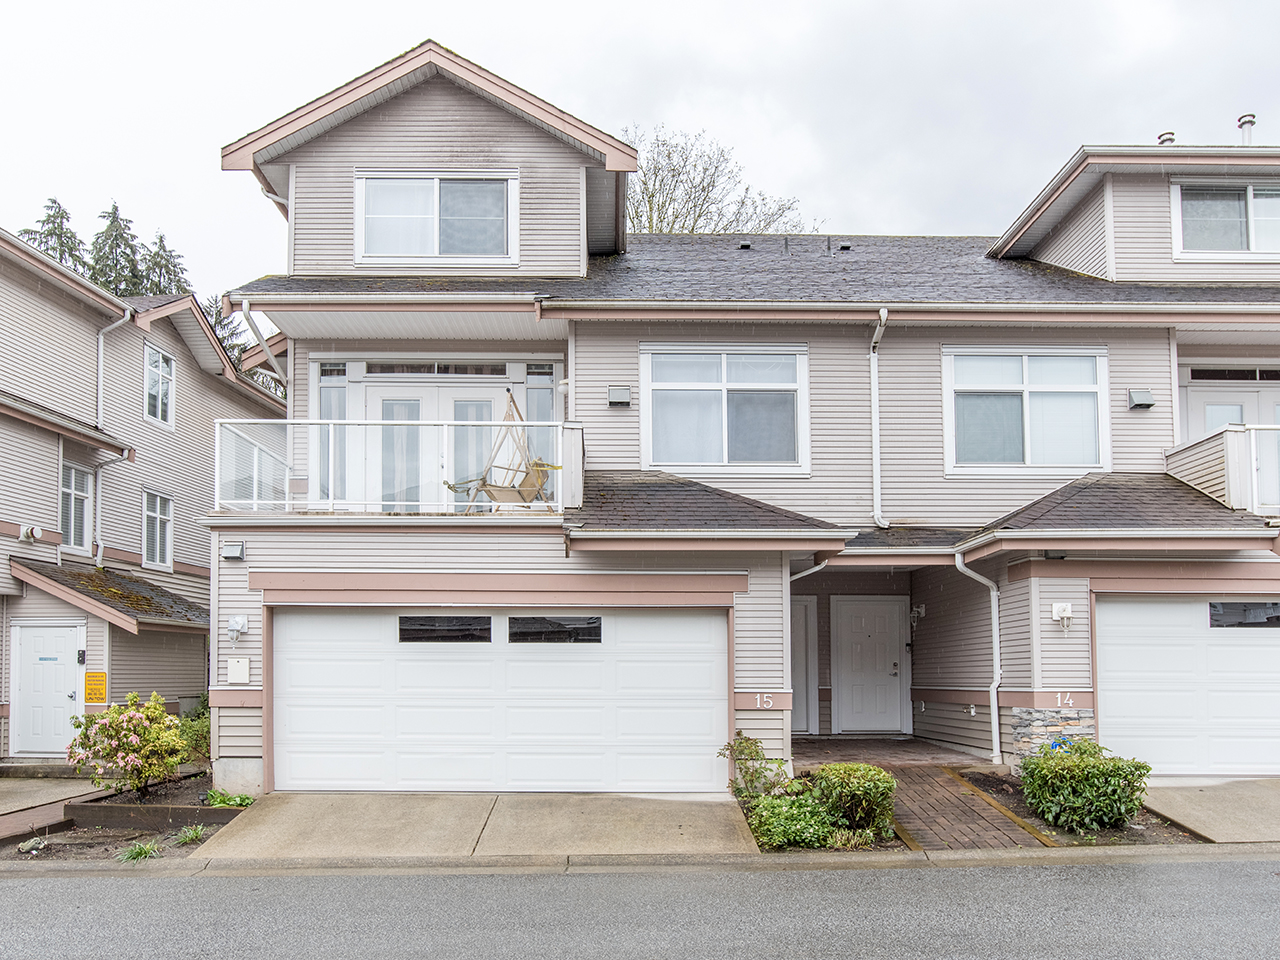 15-11860 River Road for MLS